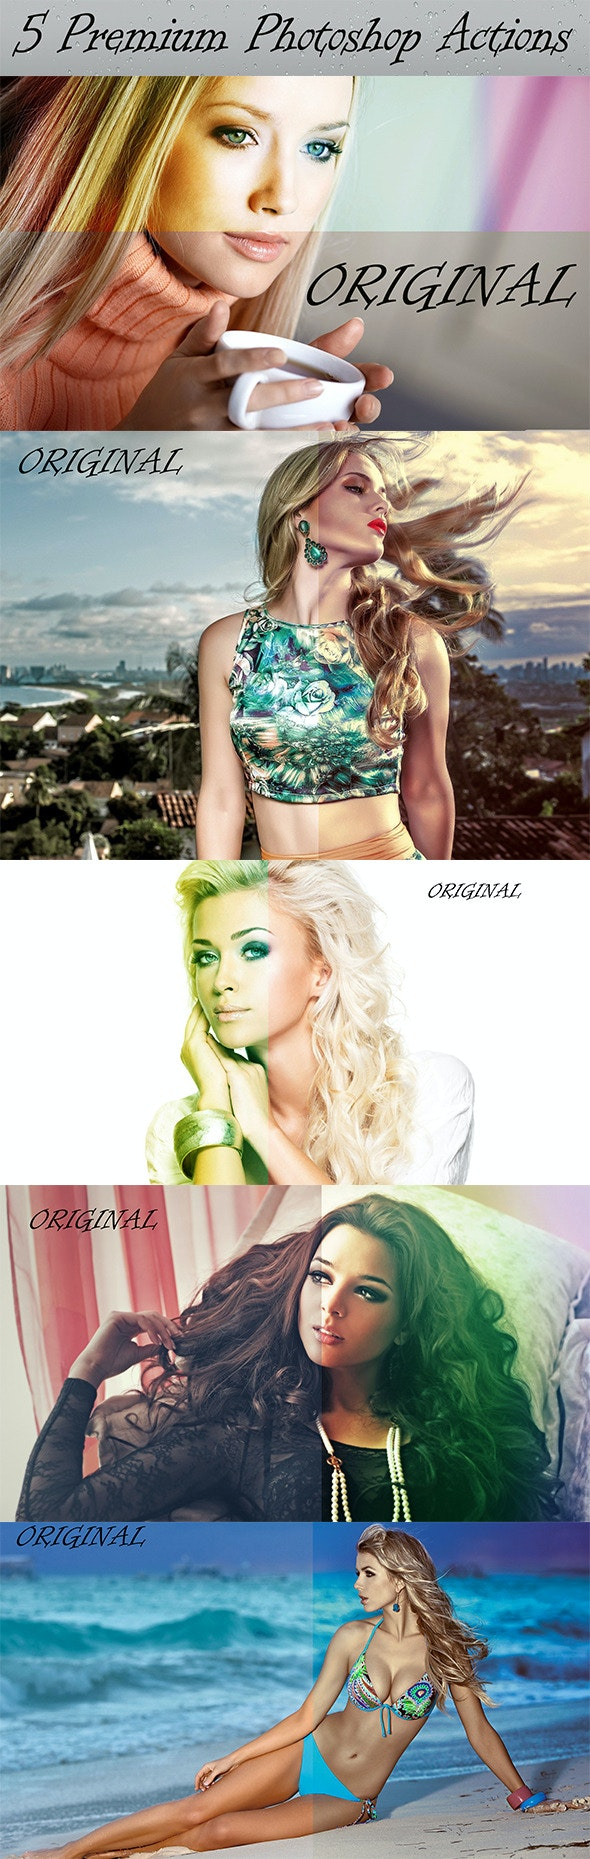 5 Premium Photoshop Actions - Add-ons